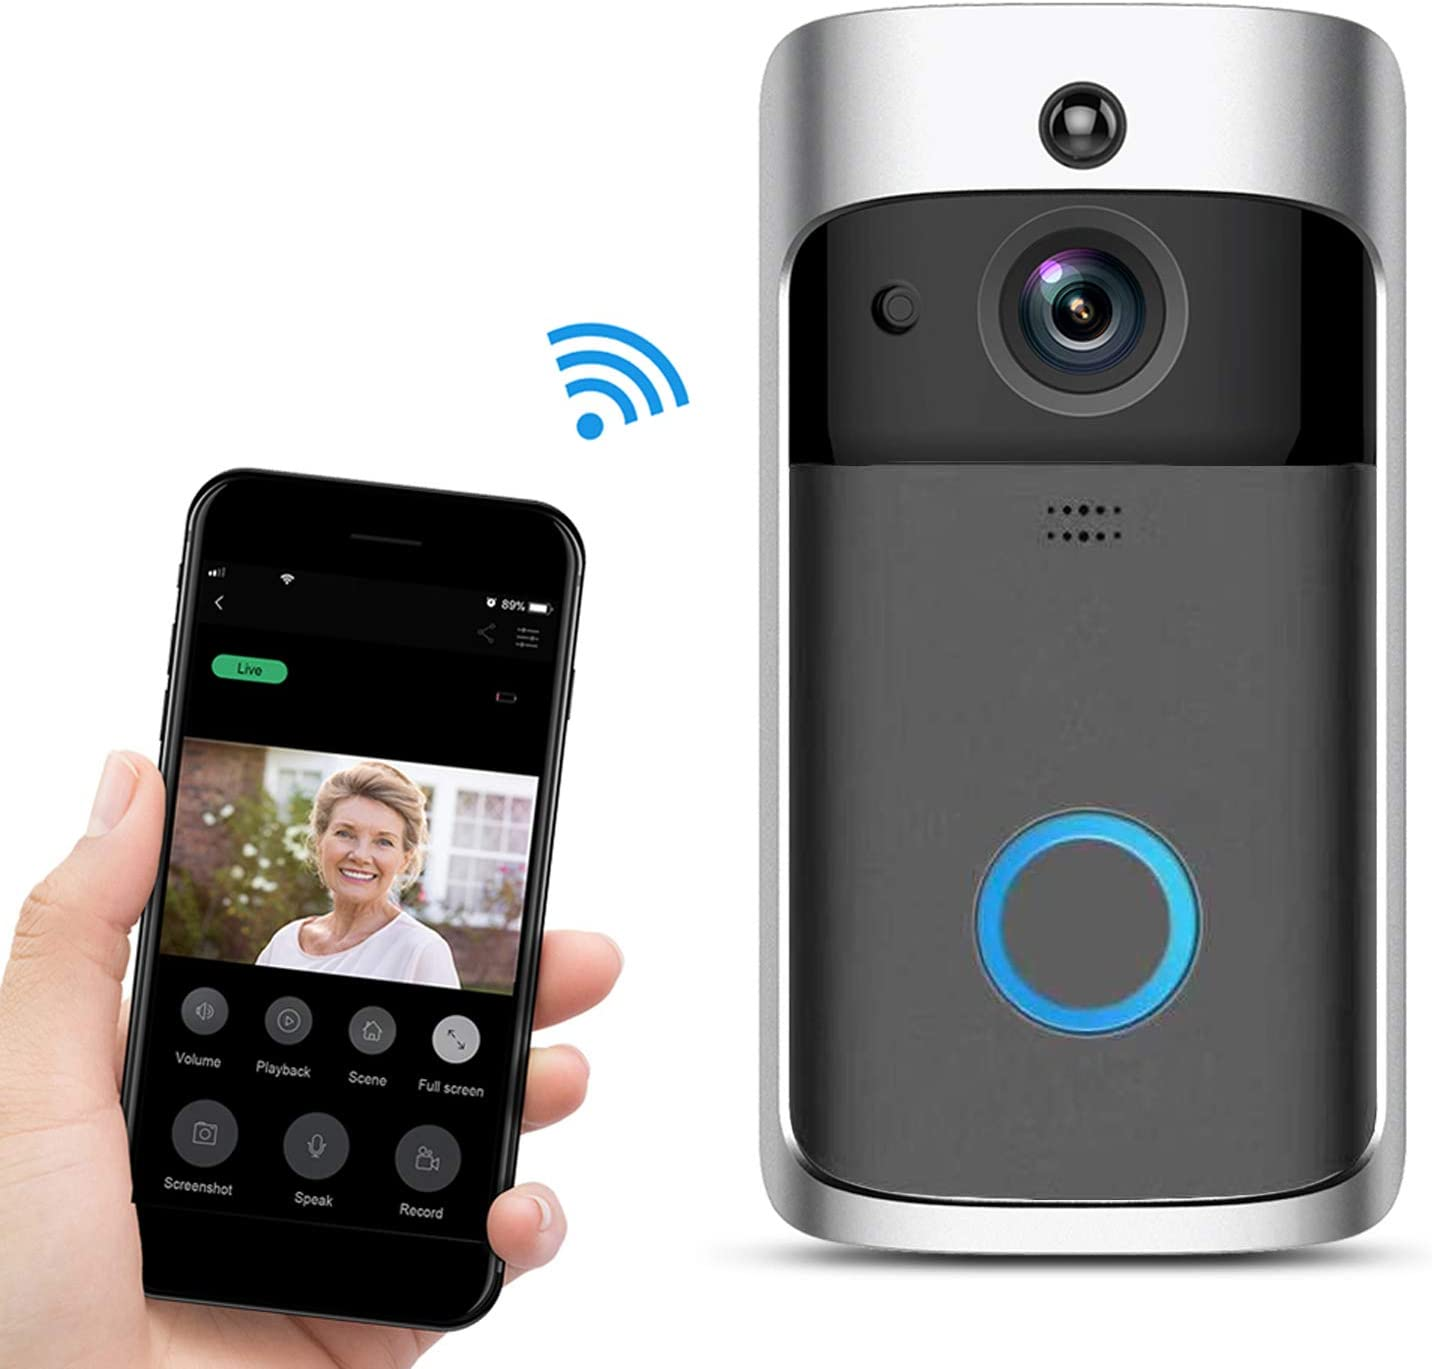 Home Ring Bell Video Doorbell, 720p HD Real-Time Video Call WiFi Wireless Connect Outdoor Security Camera with Two-Way Talk,Night Vision,IR Alarm, 18650 Rechargeable Battery not Included (Black)